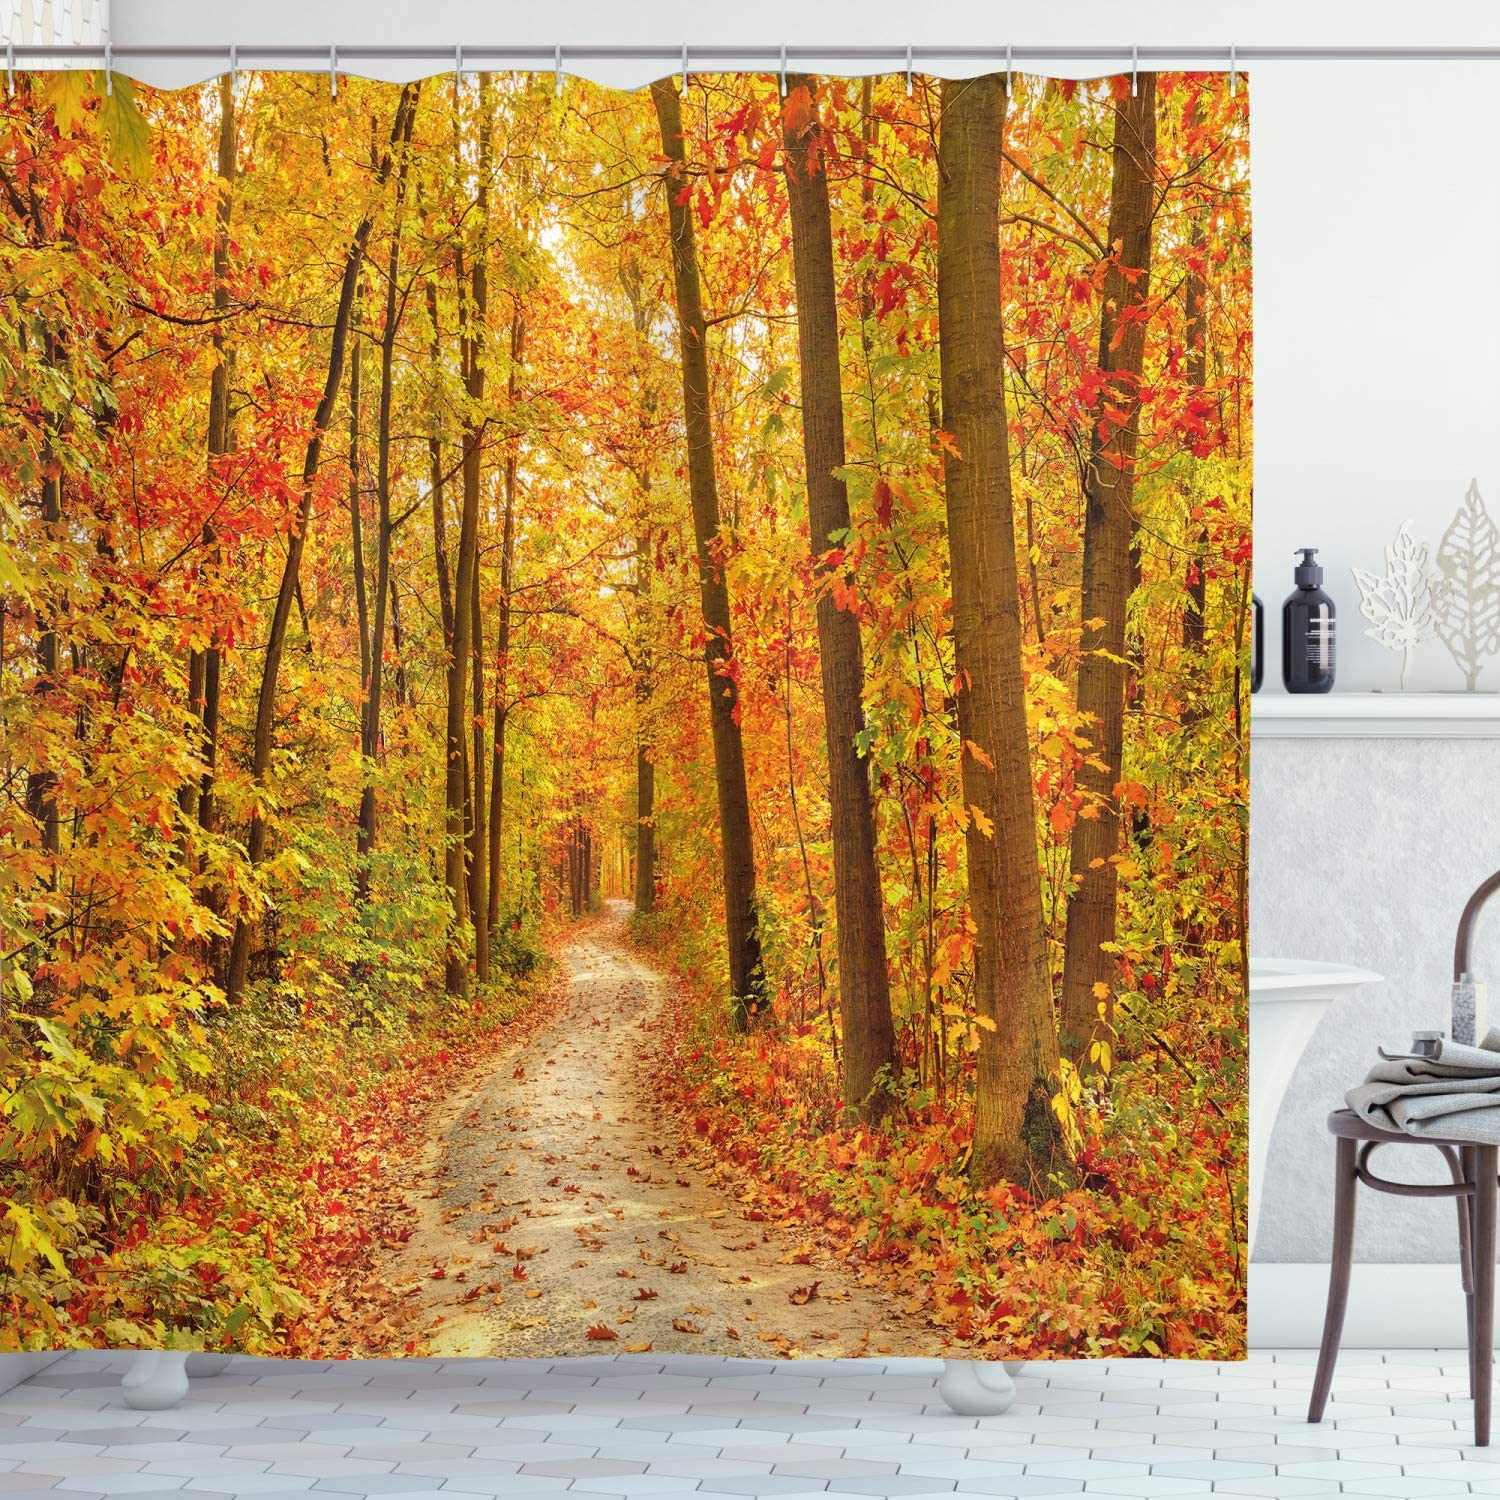 Ambesonne Fall Shower Curtain, Deciduous Trees with Seasonal Leaves Pathway Wilderness Woodland Image, Cloth Fabric Bathroom Decor Set with Hooks, 70